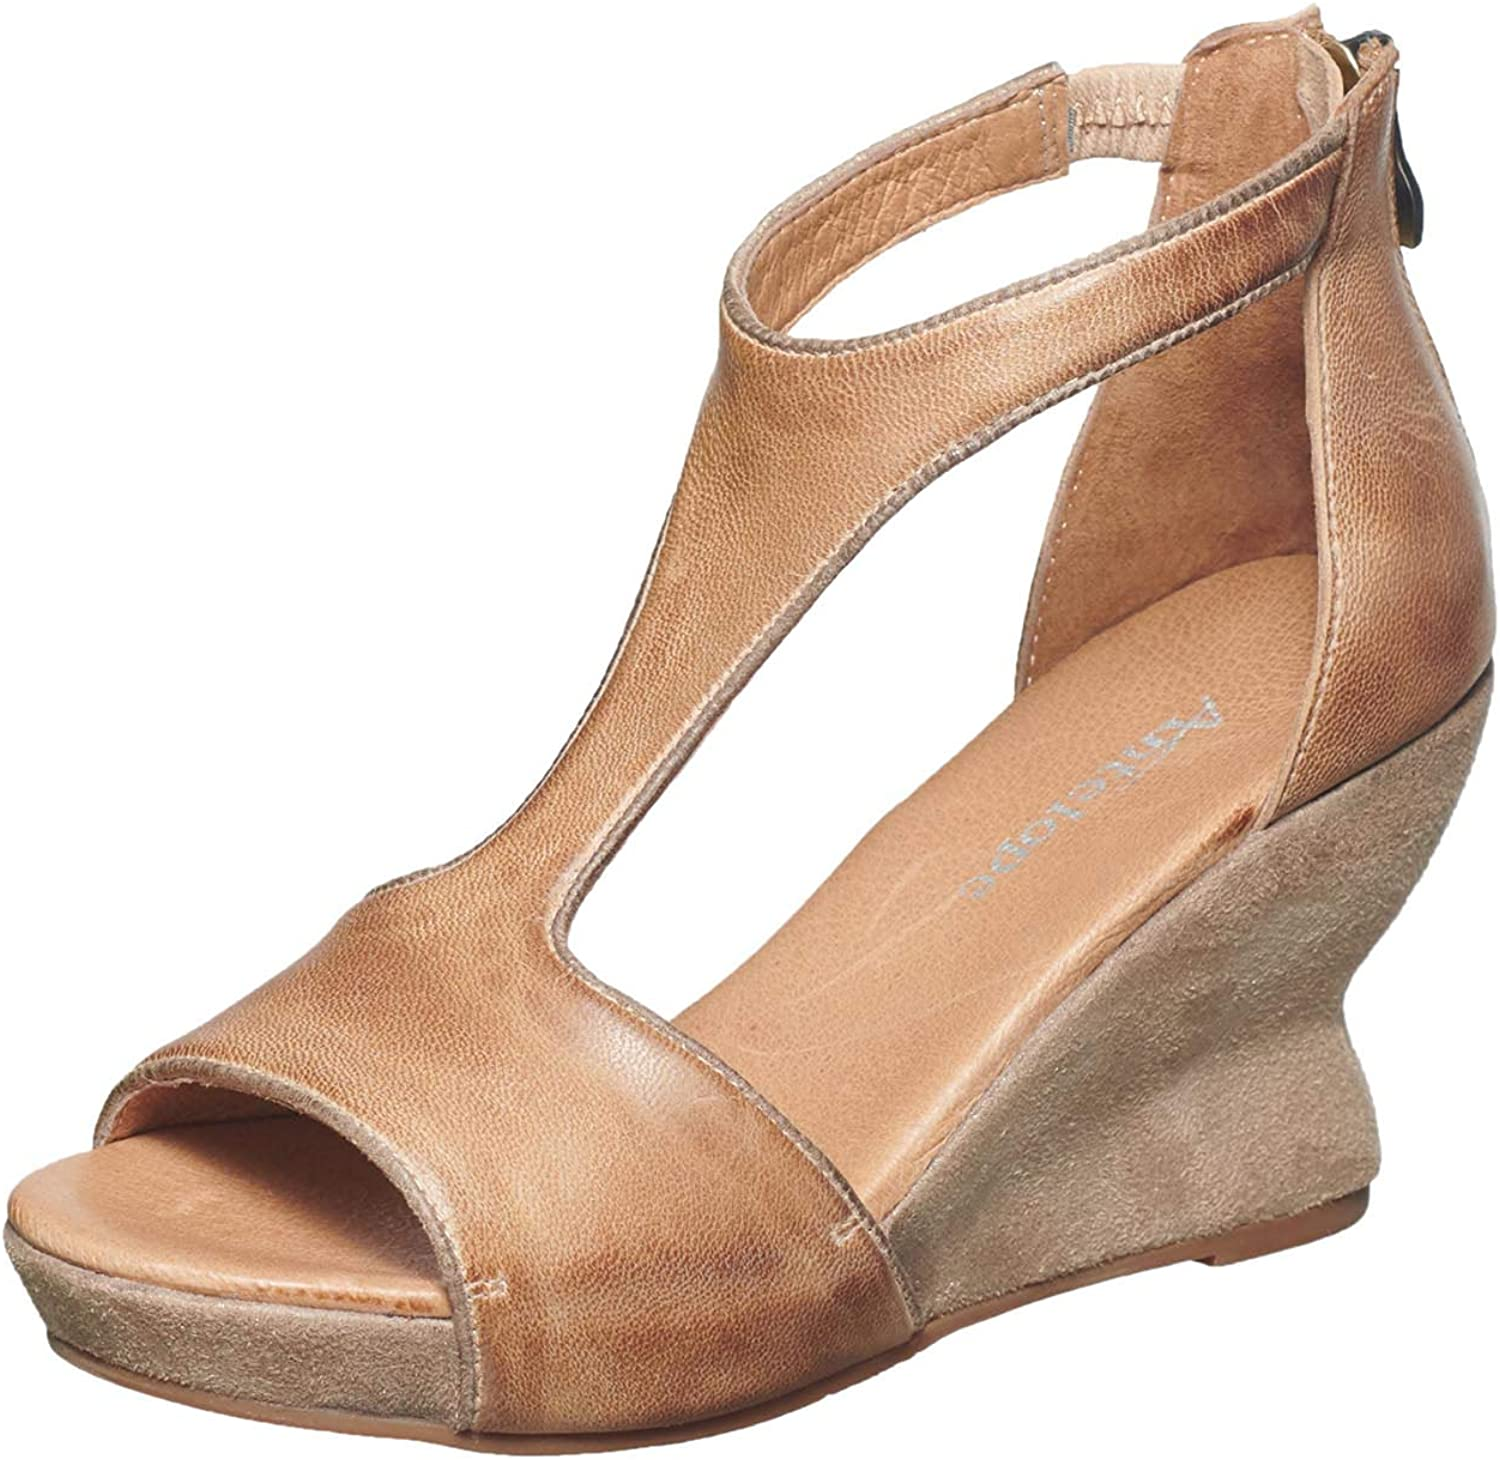 Antelope Women's 691 Leather T-Strap Hourglass Wedge